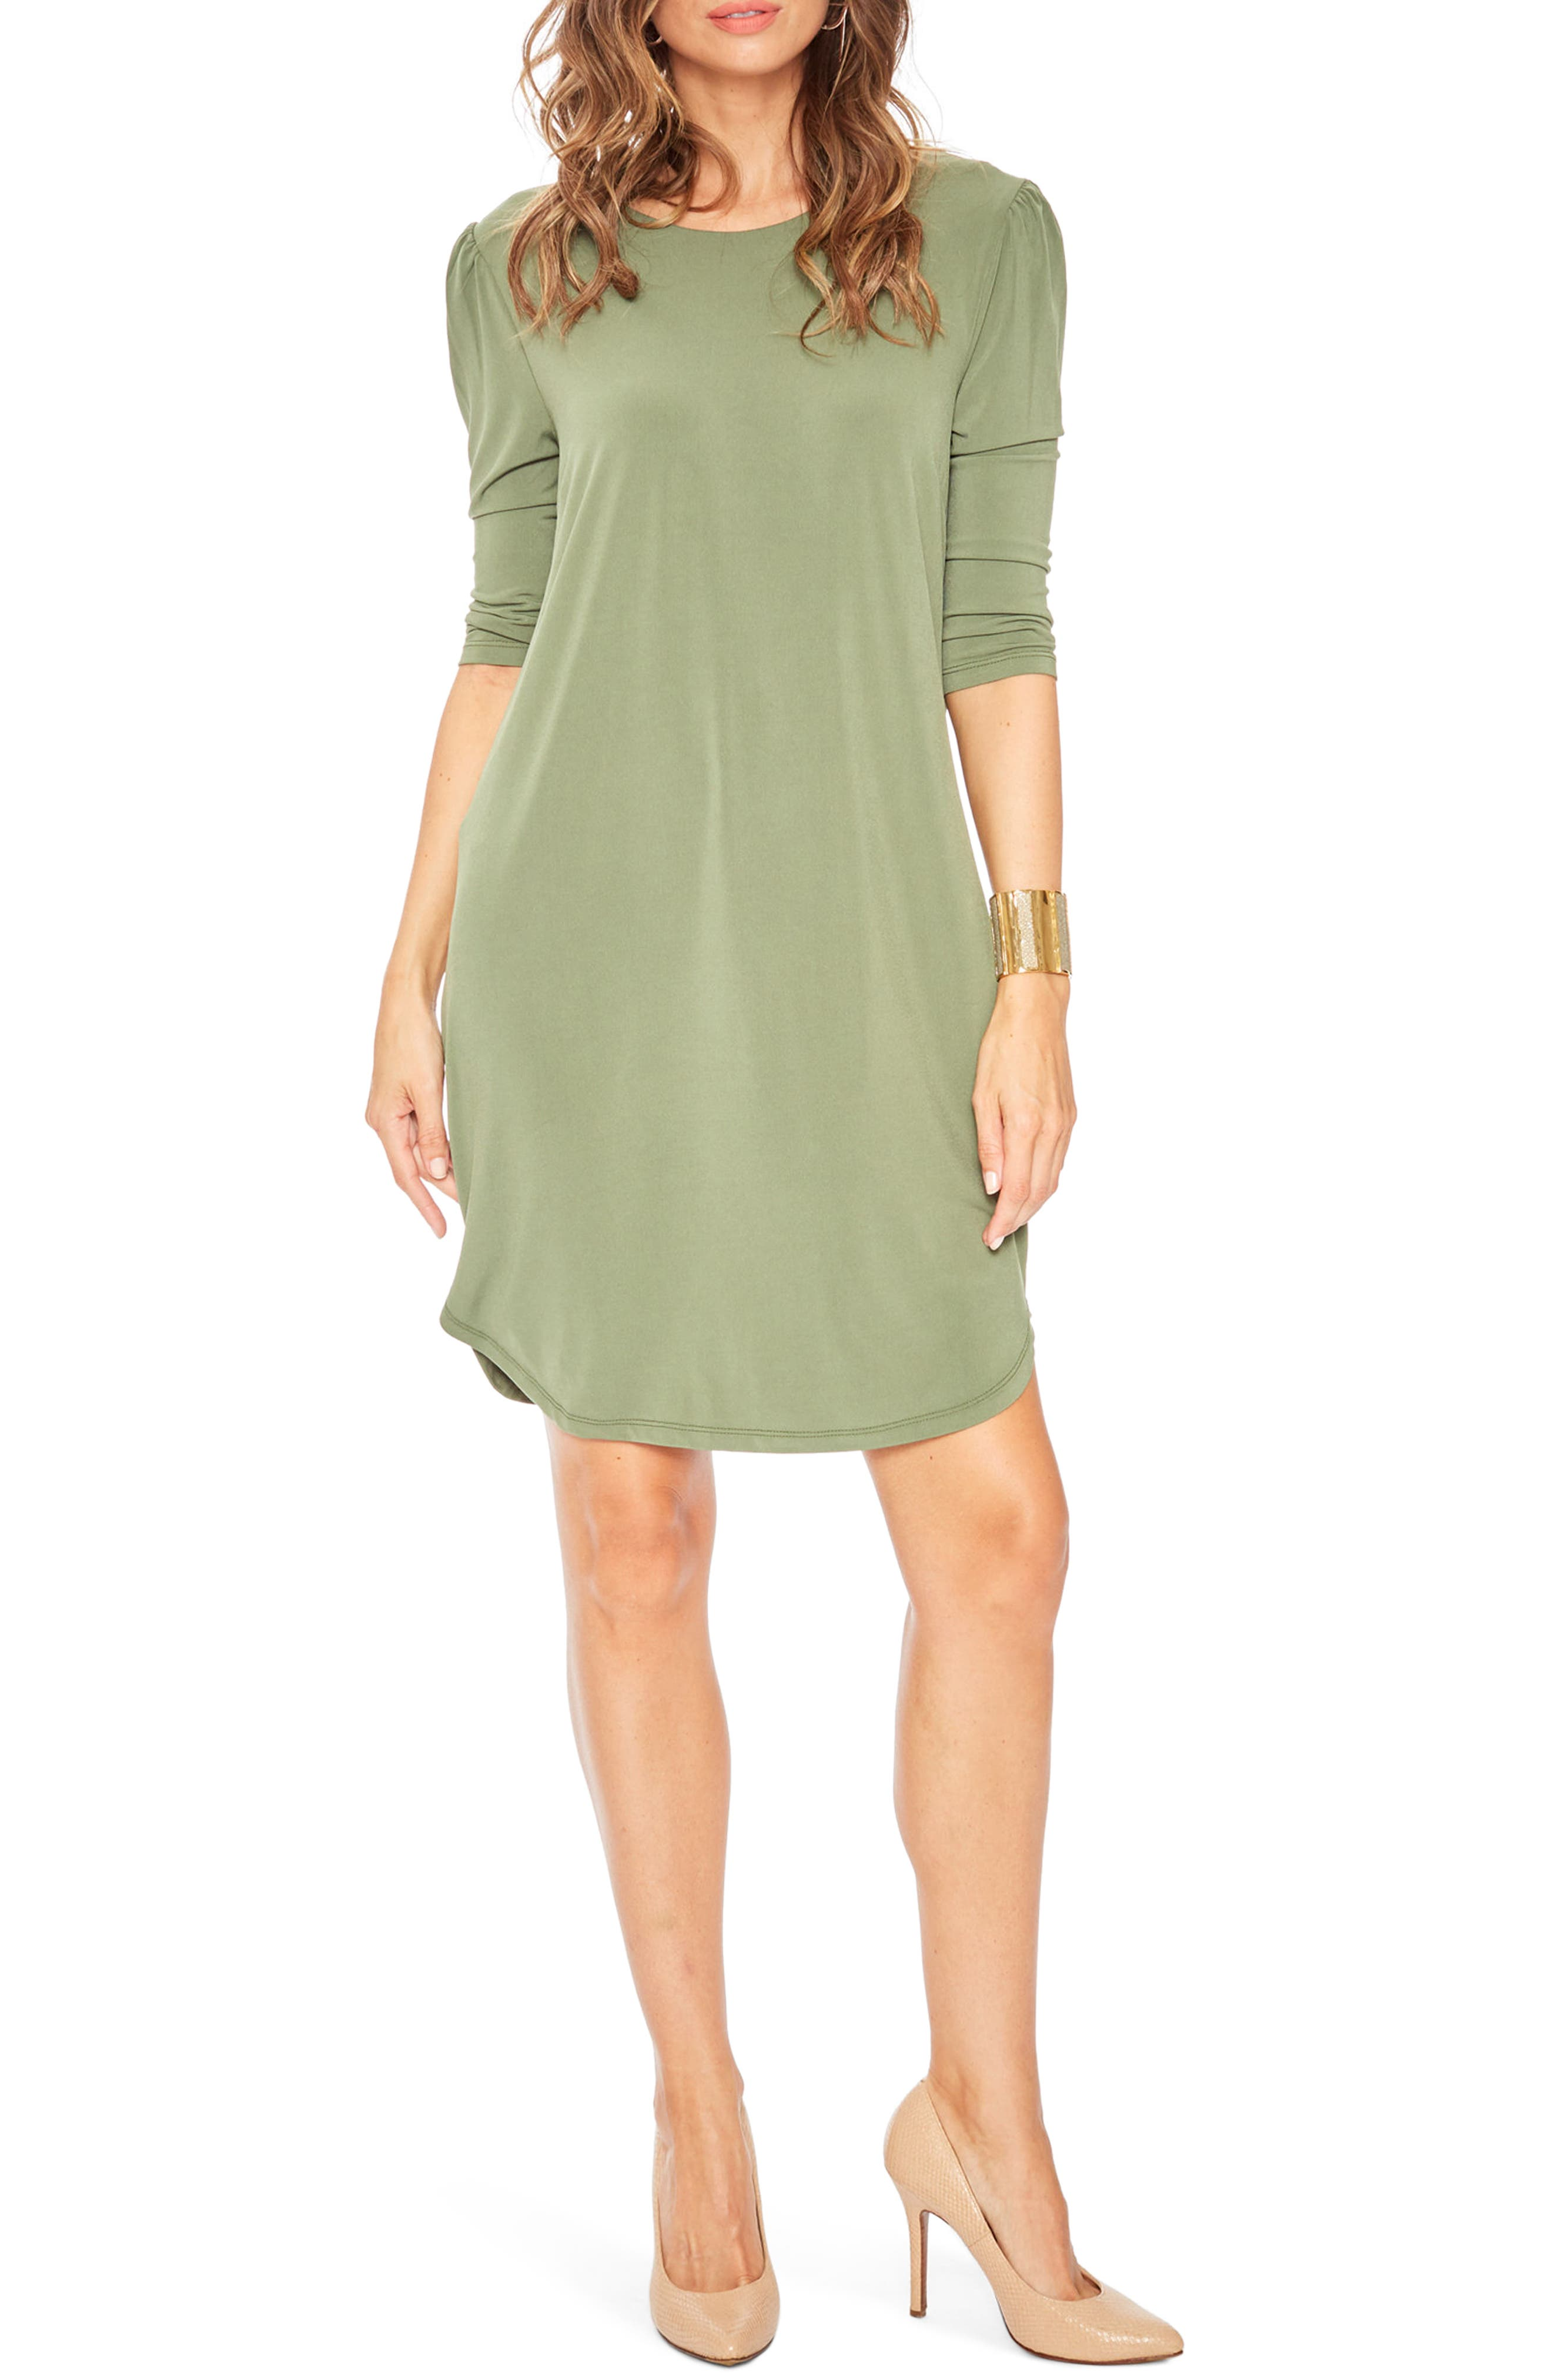 ROSIE POPE Britt Dress - Available in 3 Colors - Moss